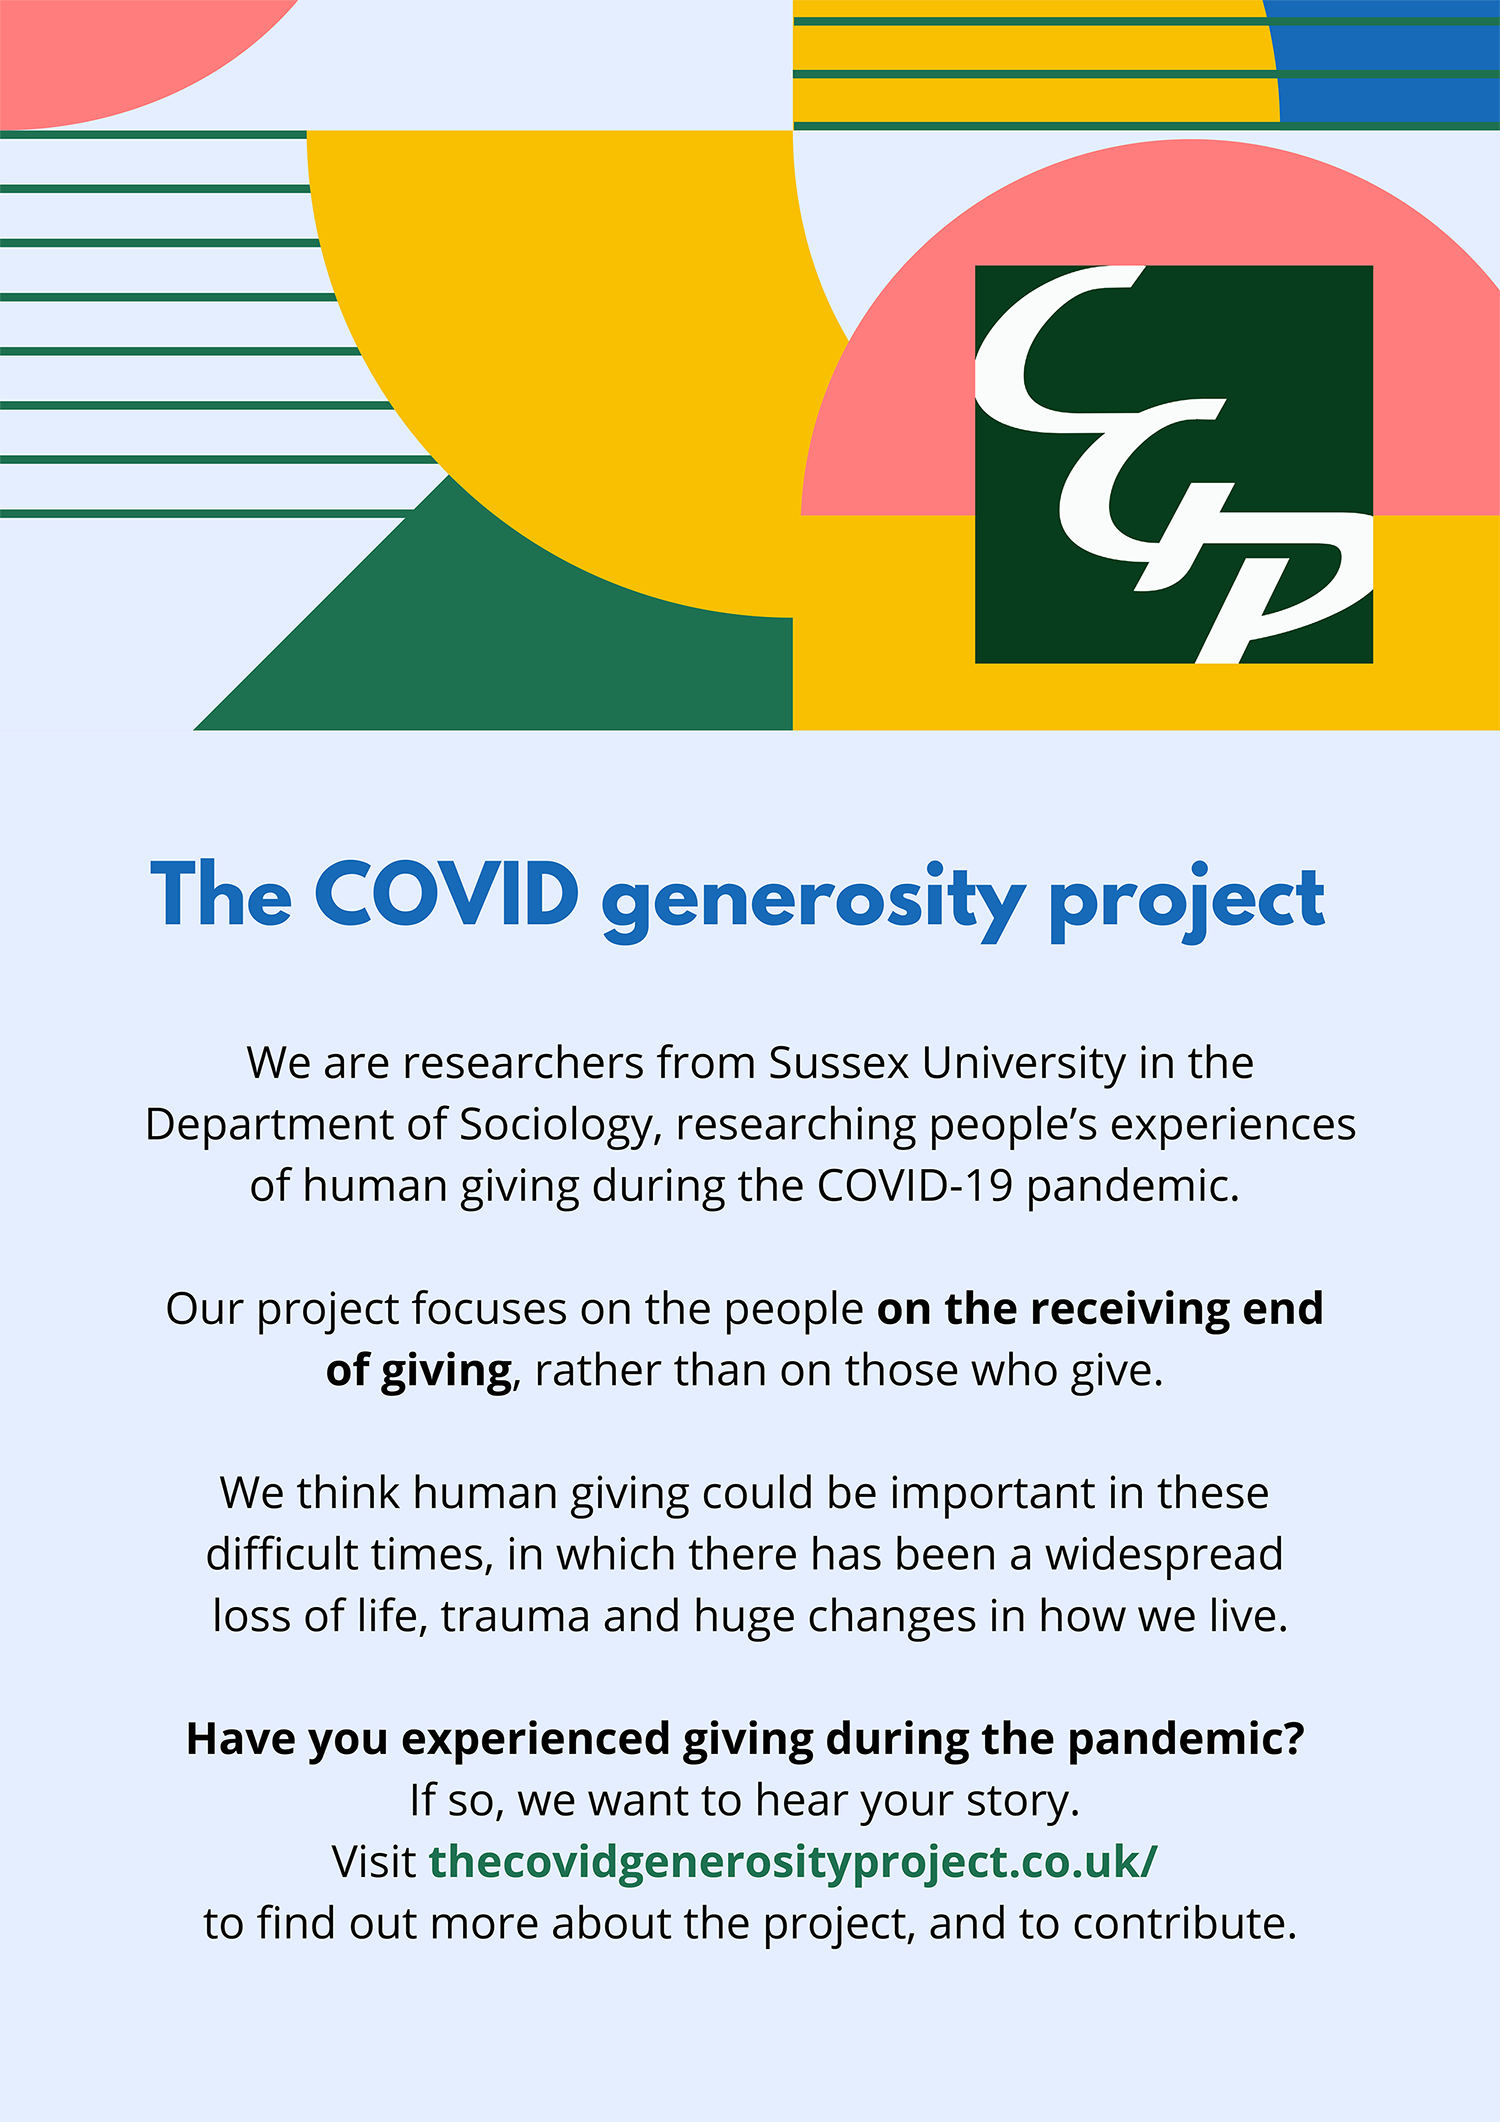 The Covid Generosity Project